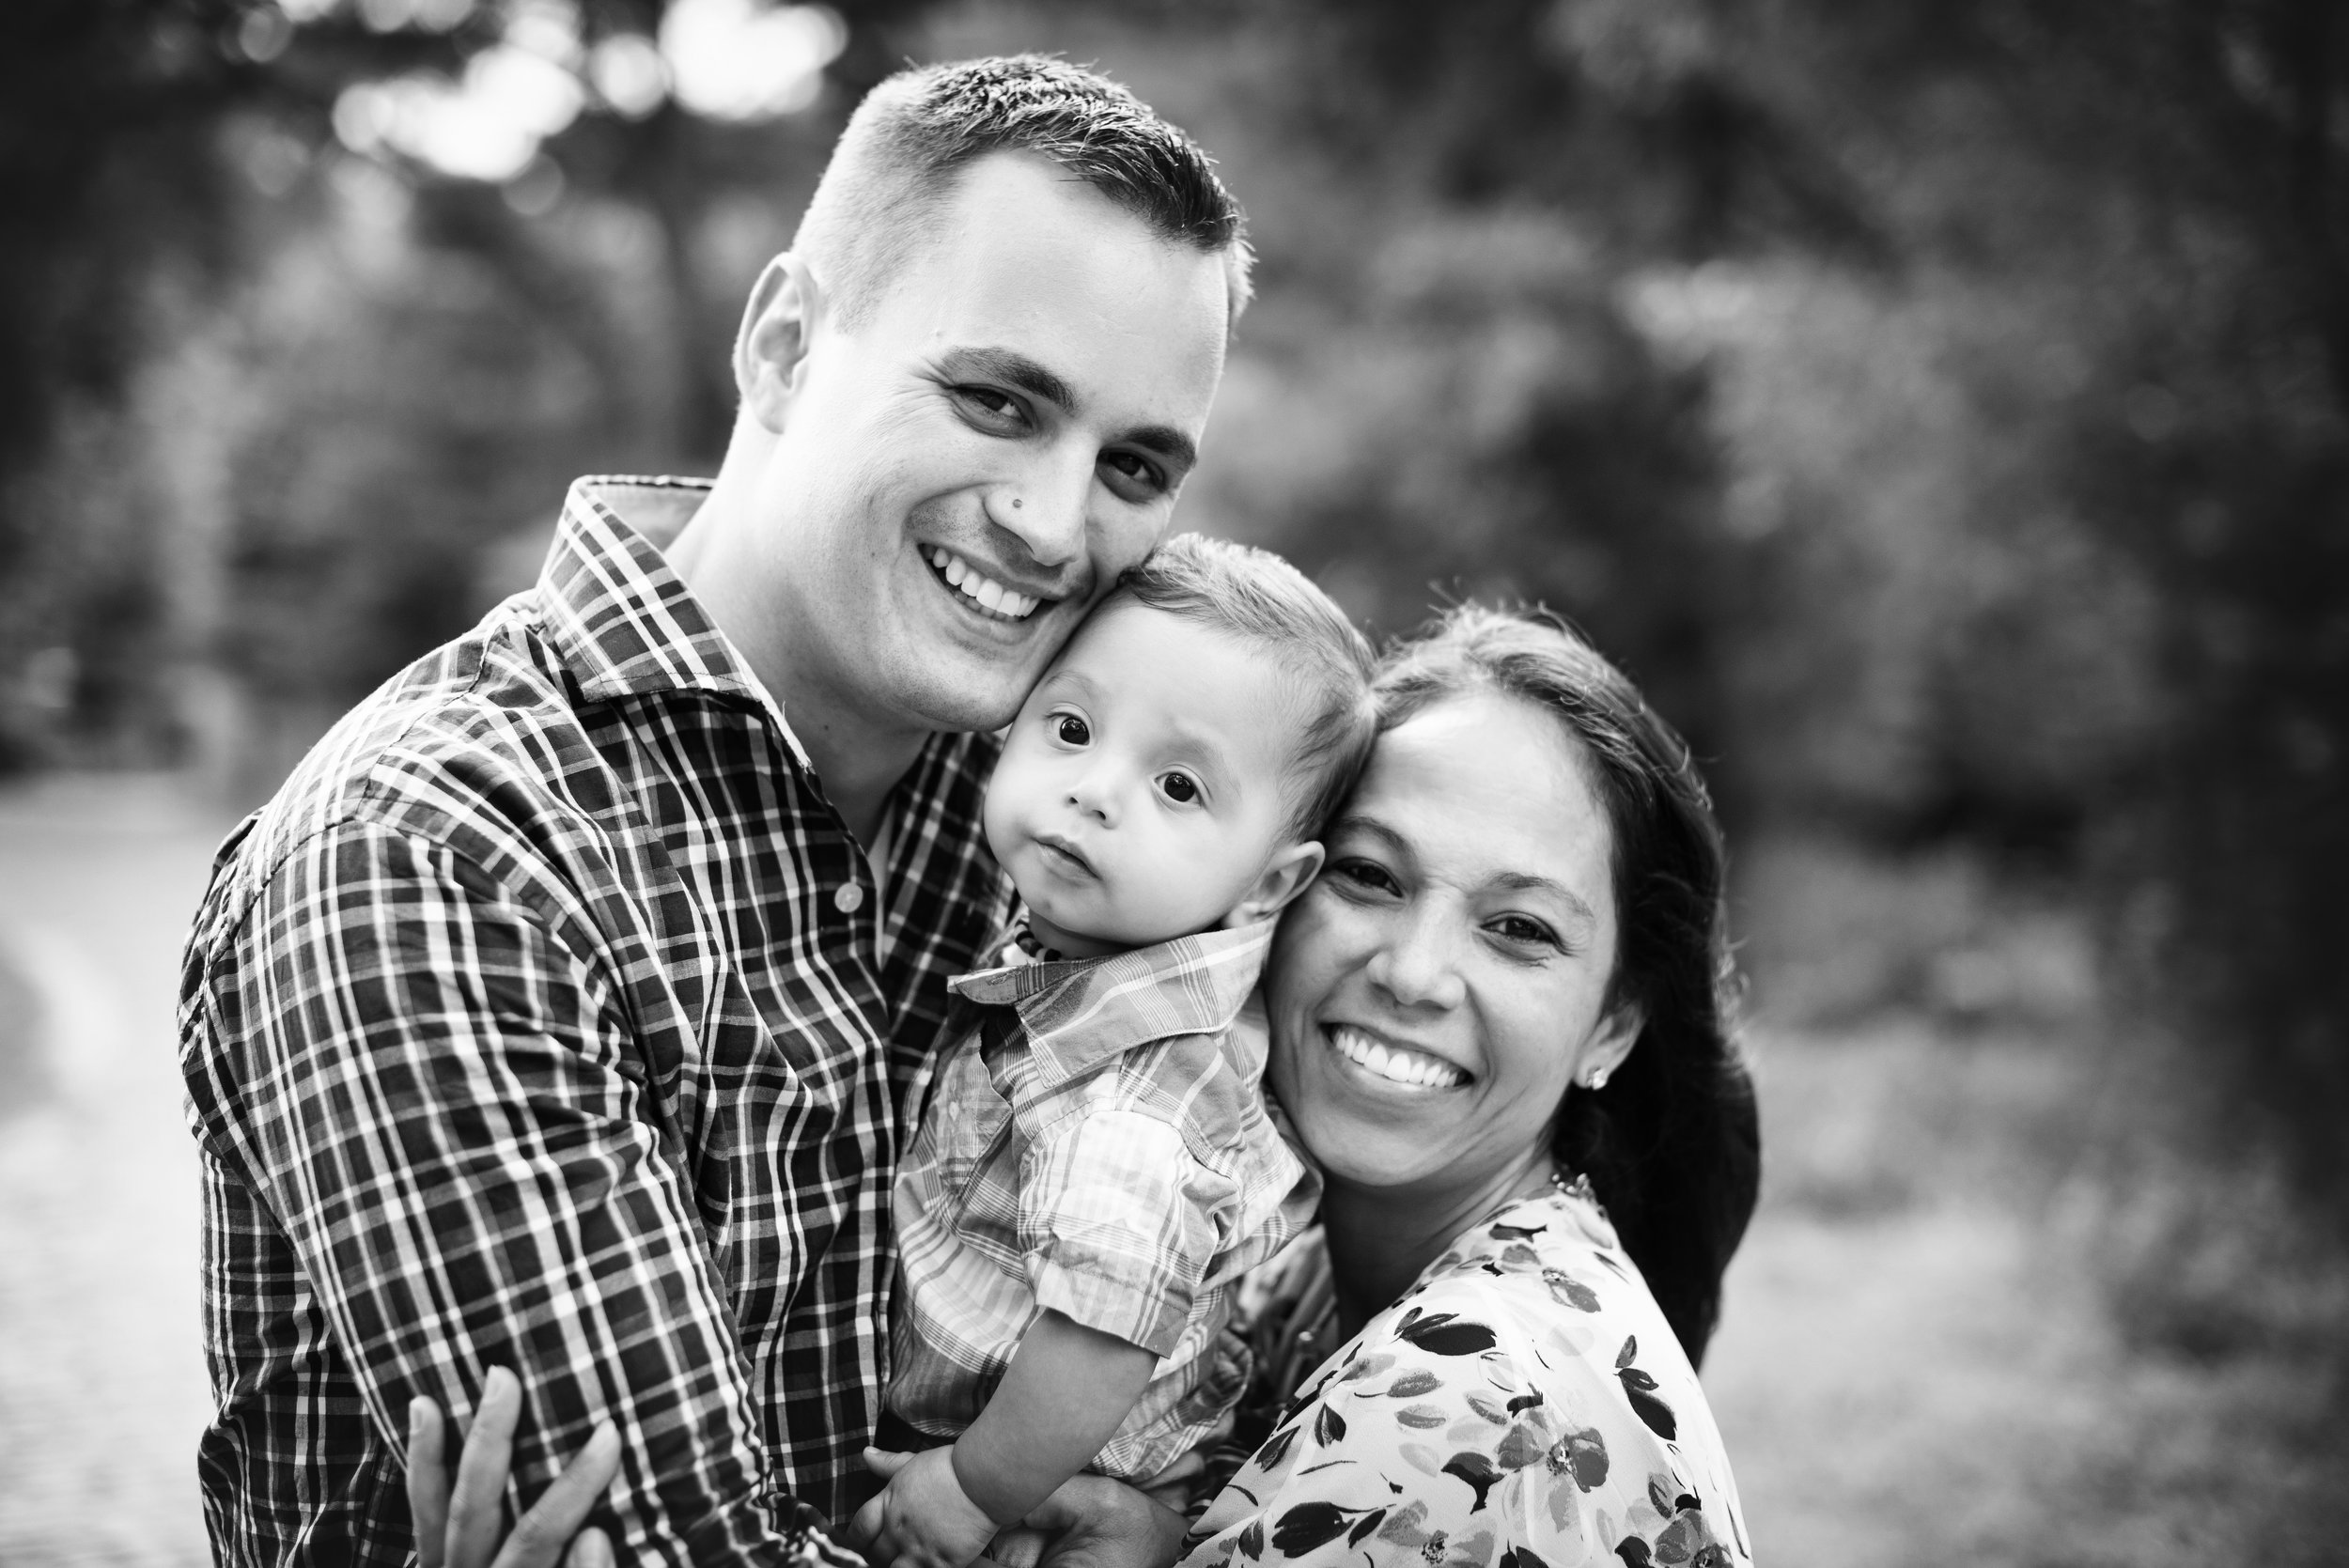 northwest indiana family photographer pumnea-18 bw.jpg